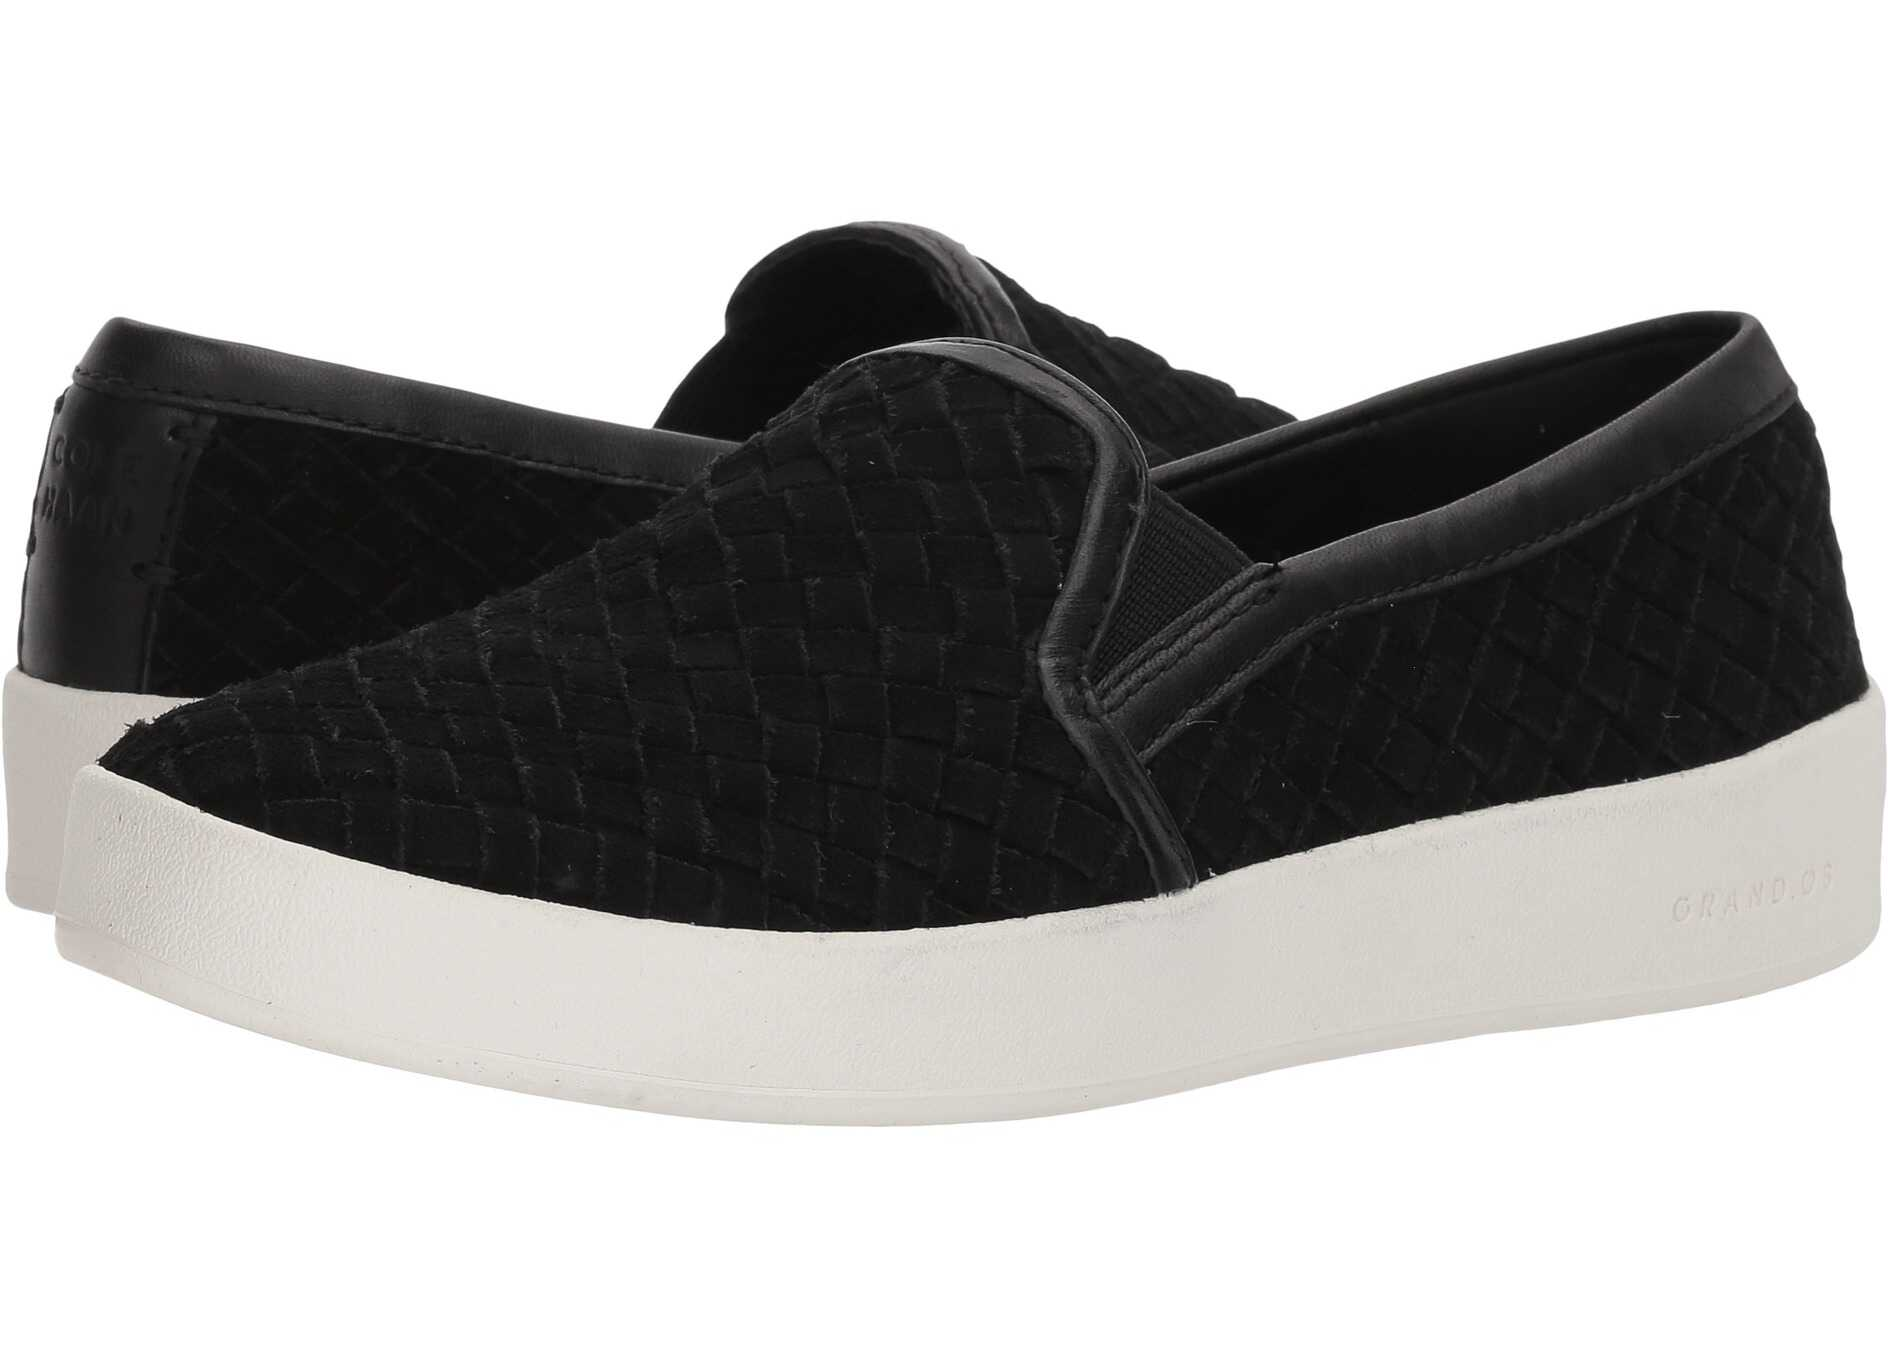 Cole Haan Grandpro Spectator Slip-On Black Woven Suede/Black Leather/Optic White